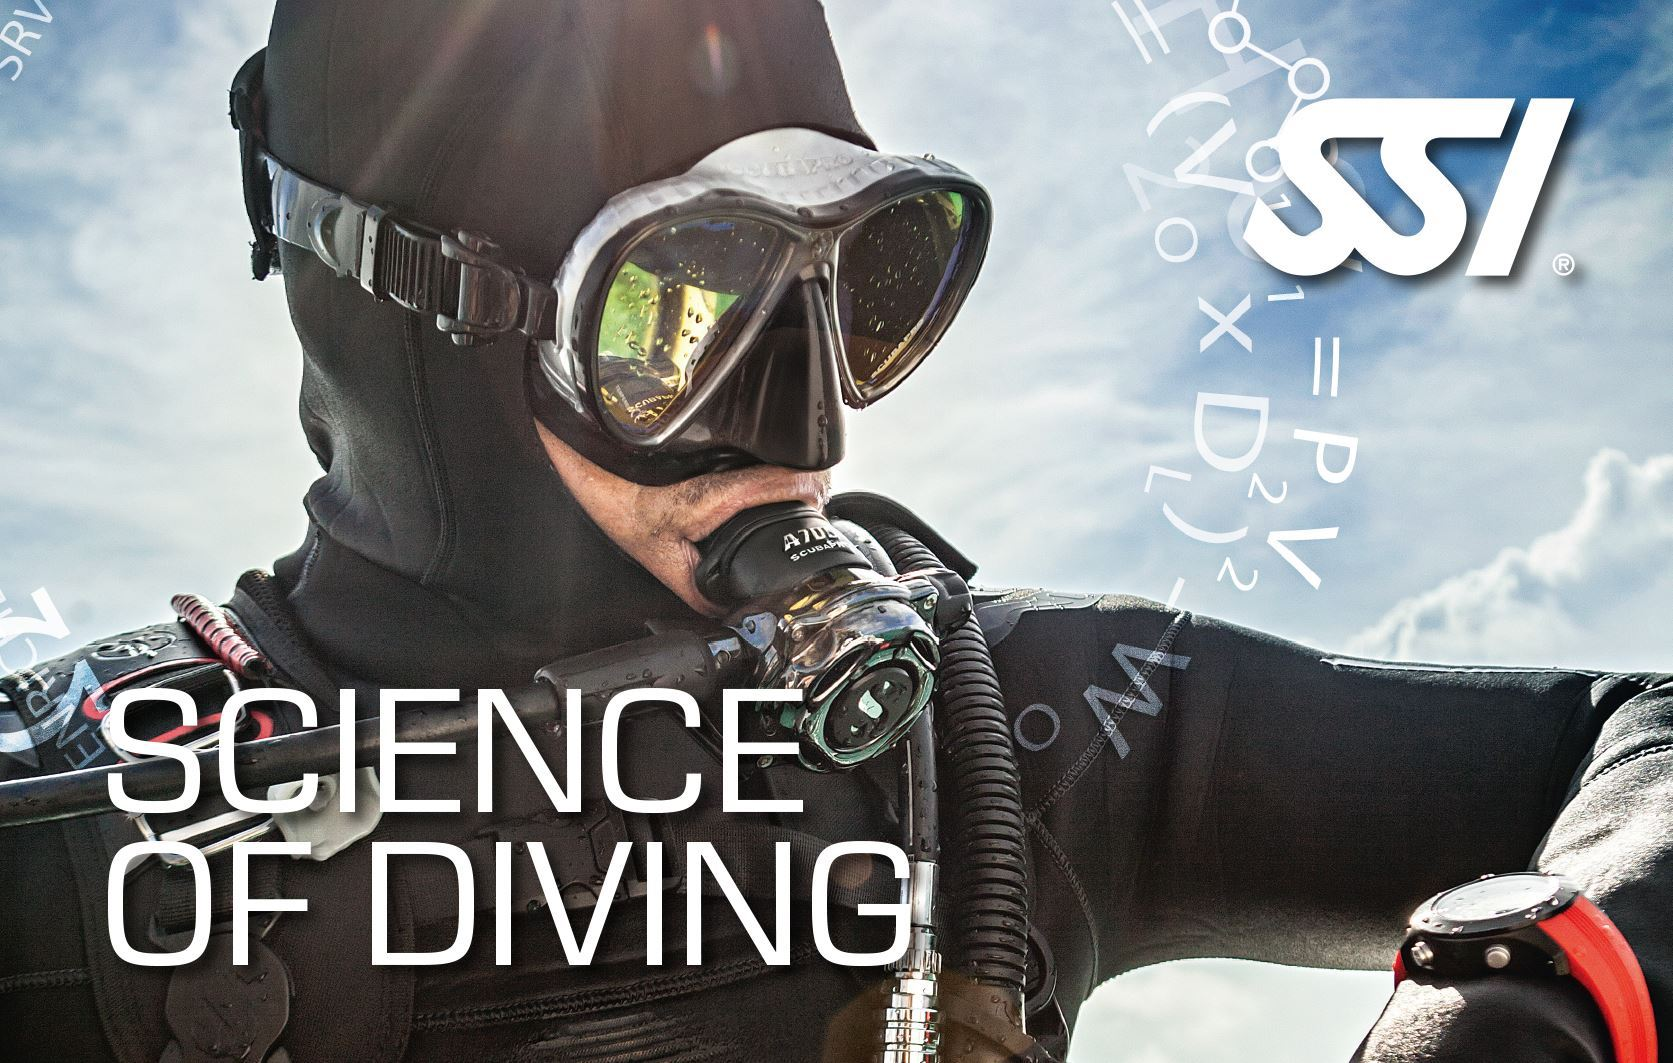 SSI Science Of Diving Speciality thumbnail